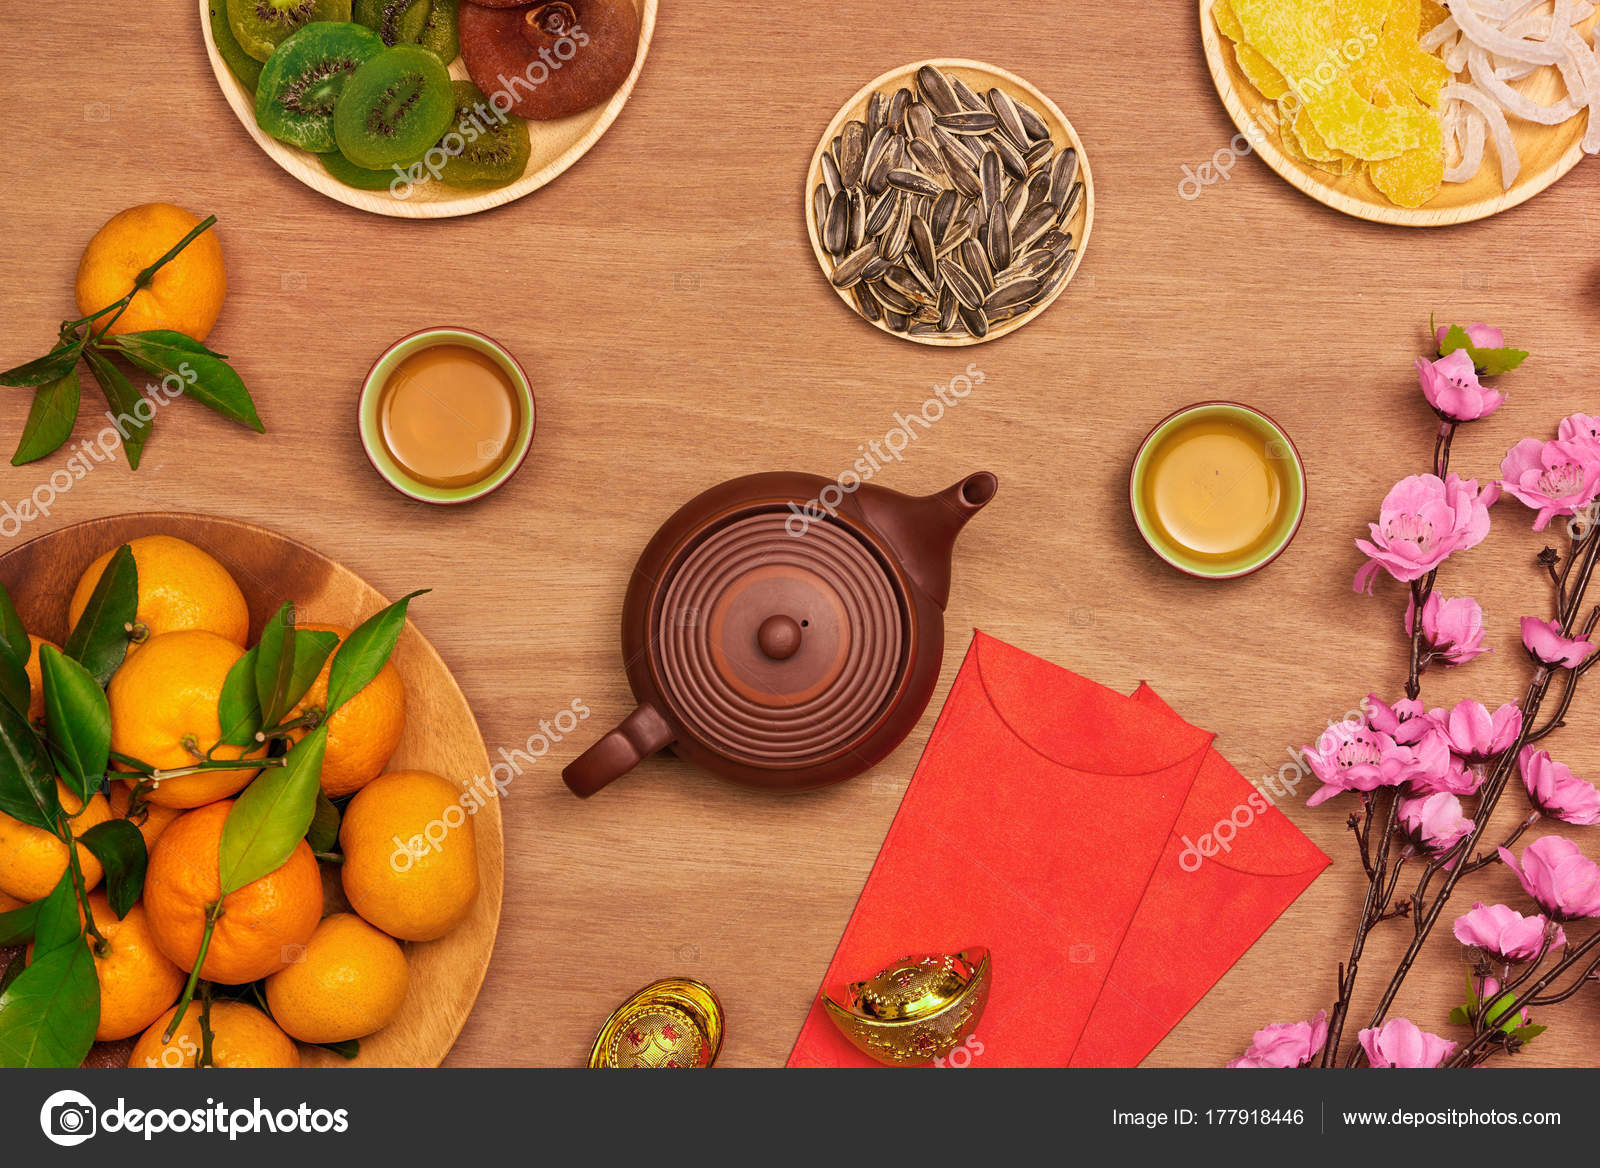 Chinese New Year Traditional Table Setting Tangerines \u2014 Stock Photo & Chinese New Year Traditional Table Setting Tangerines \u2014 Stock Photo ...